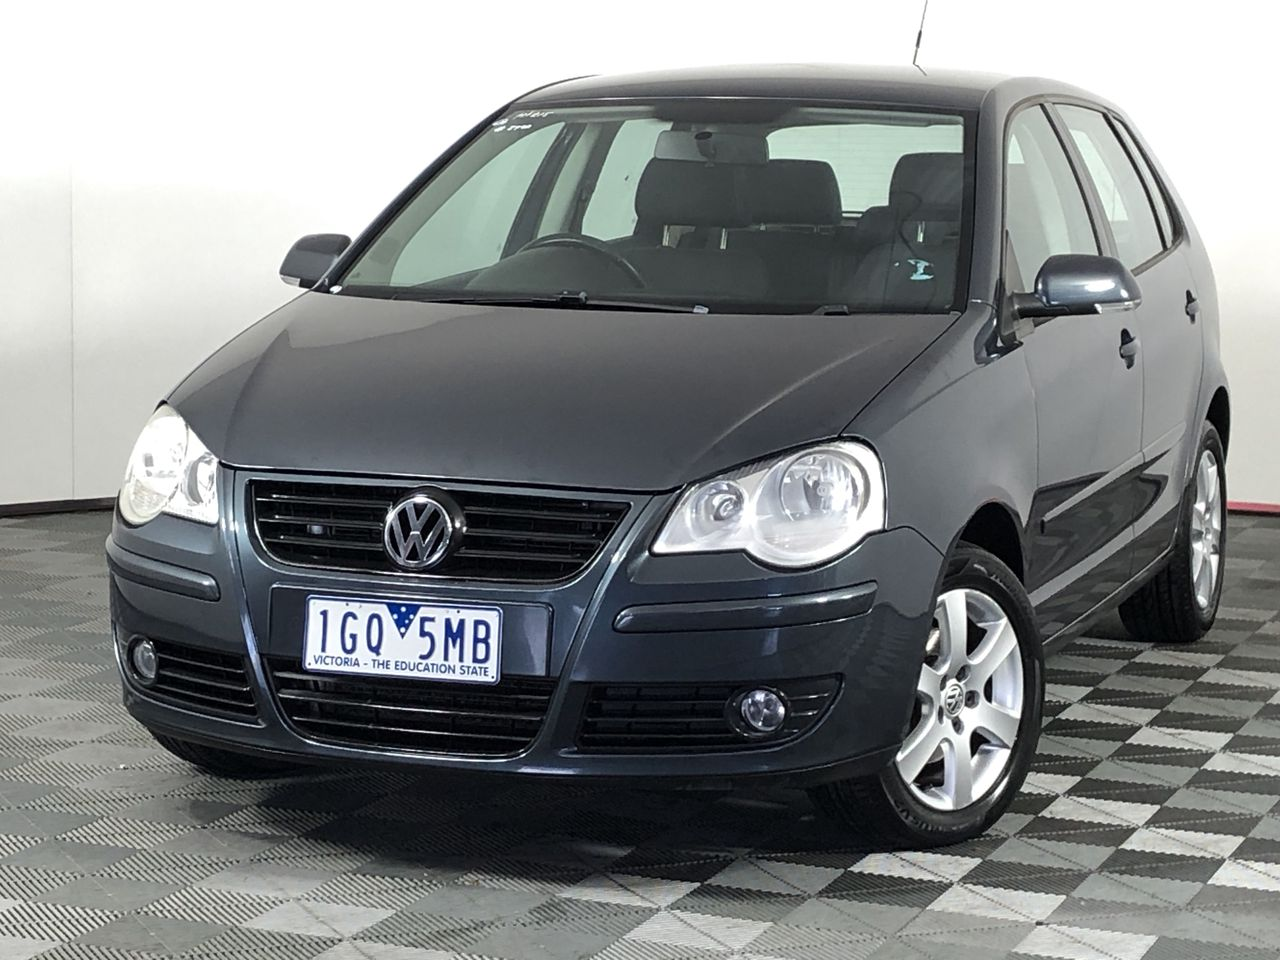 2008 Volkswagen Polo Tdi Polo Manual Hatchback